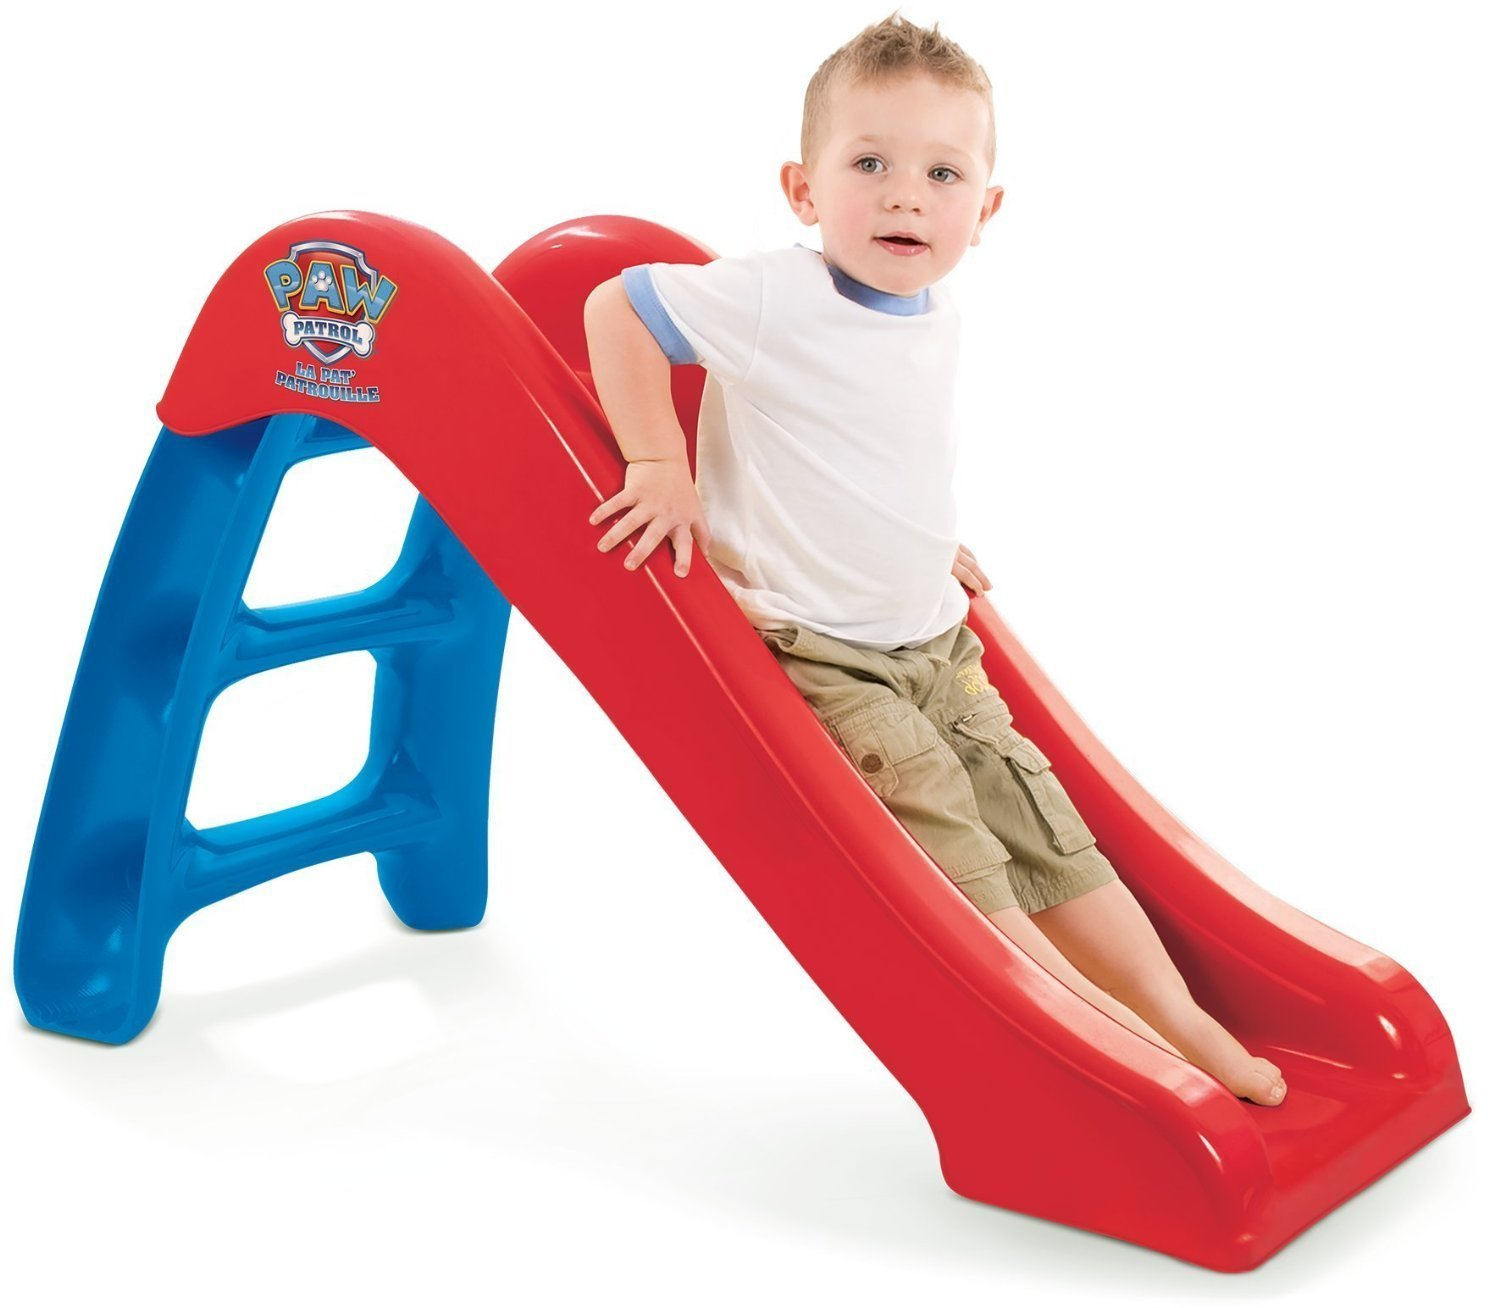 Paw Patrol Kids Childrens Official Junior Play Slide